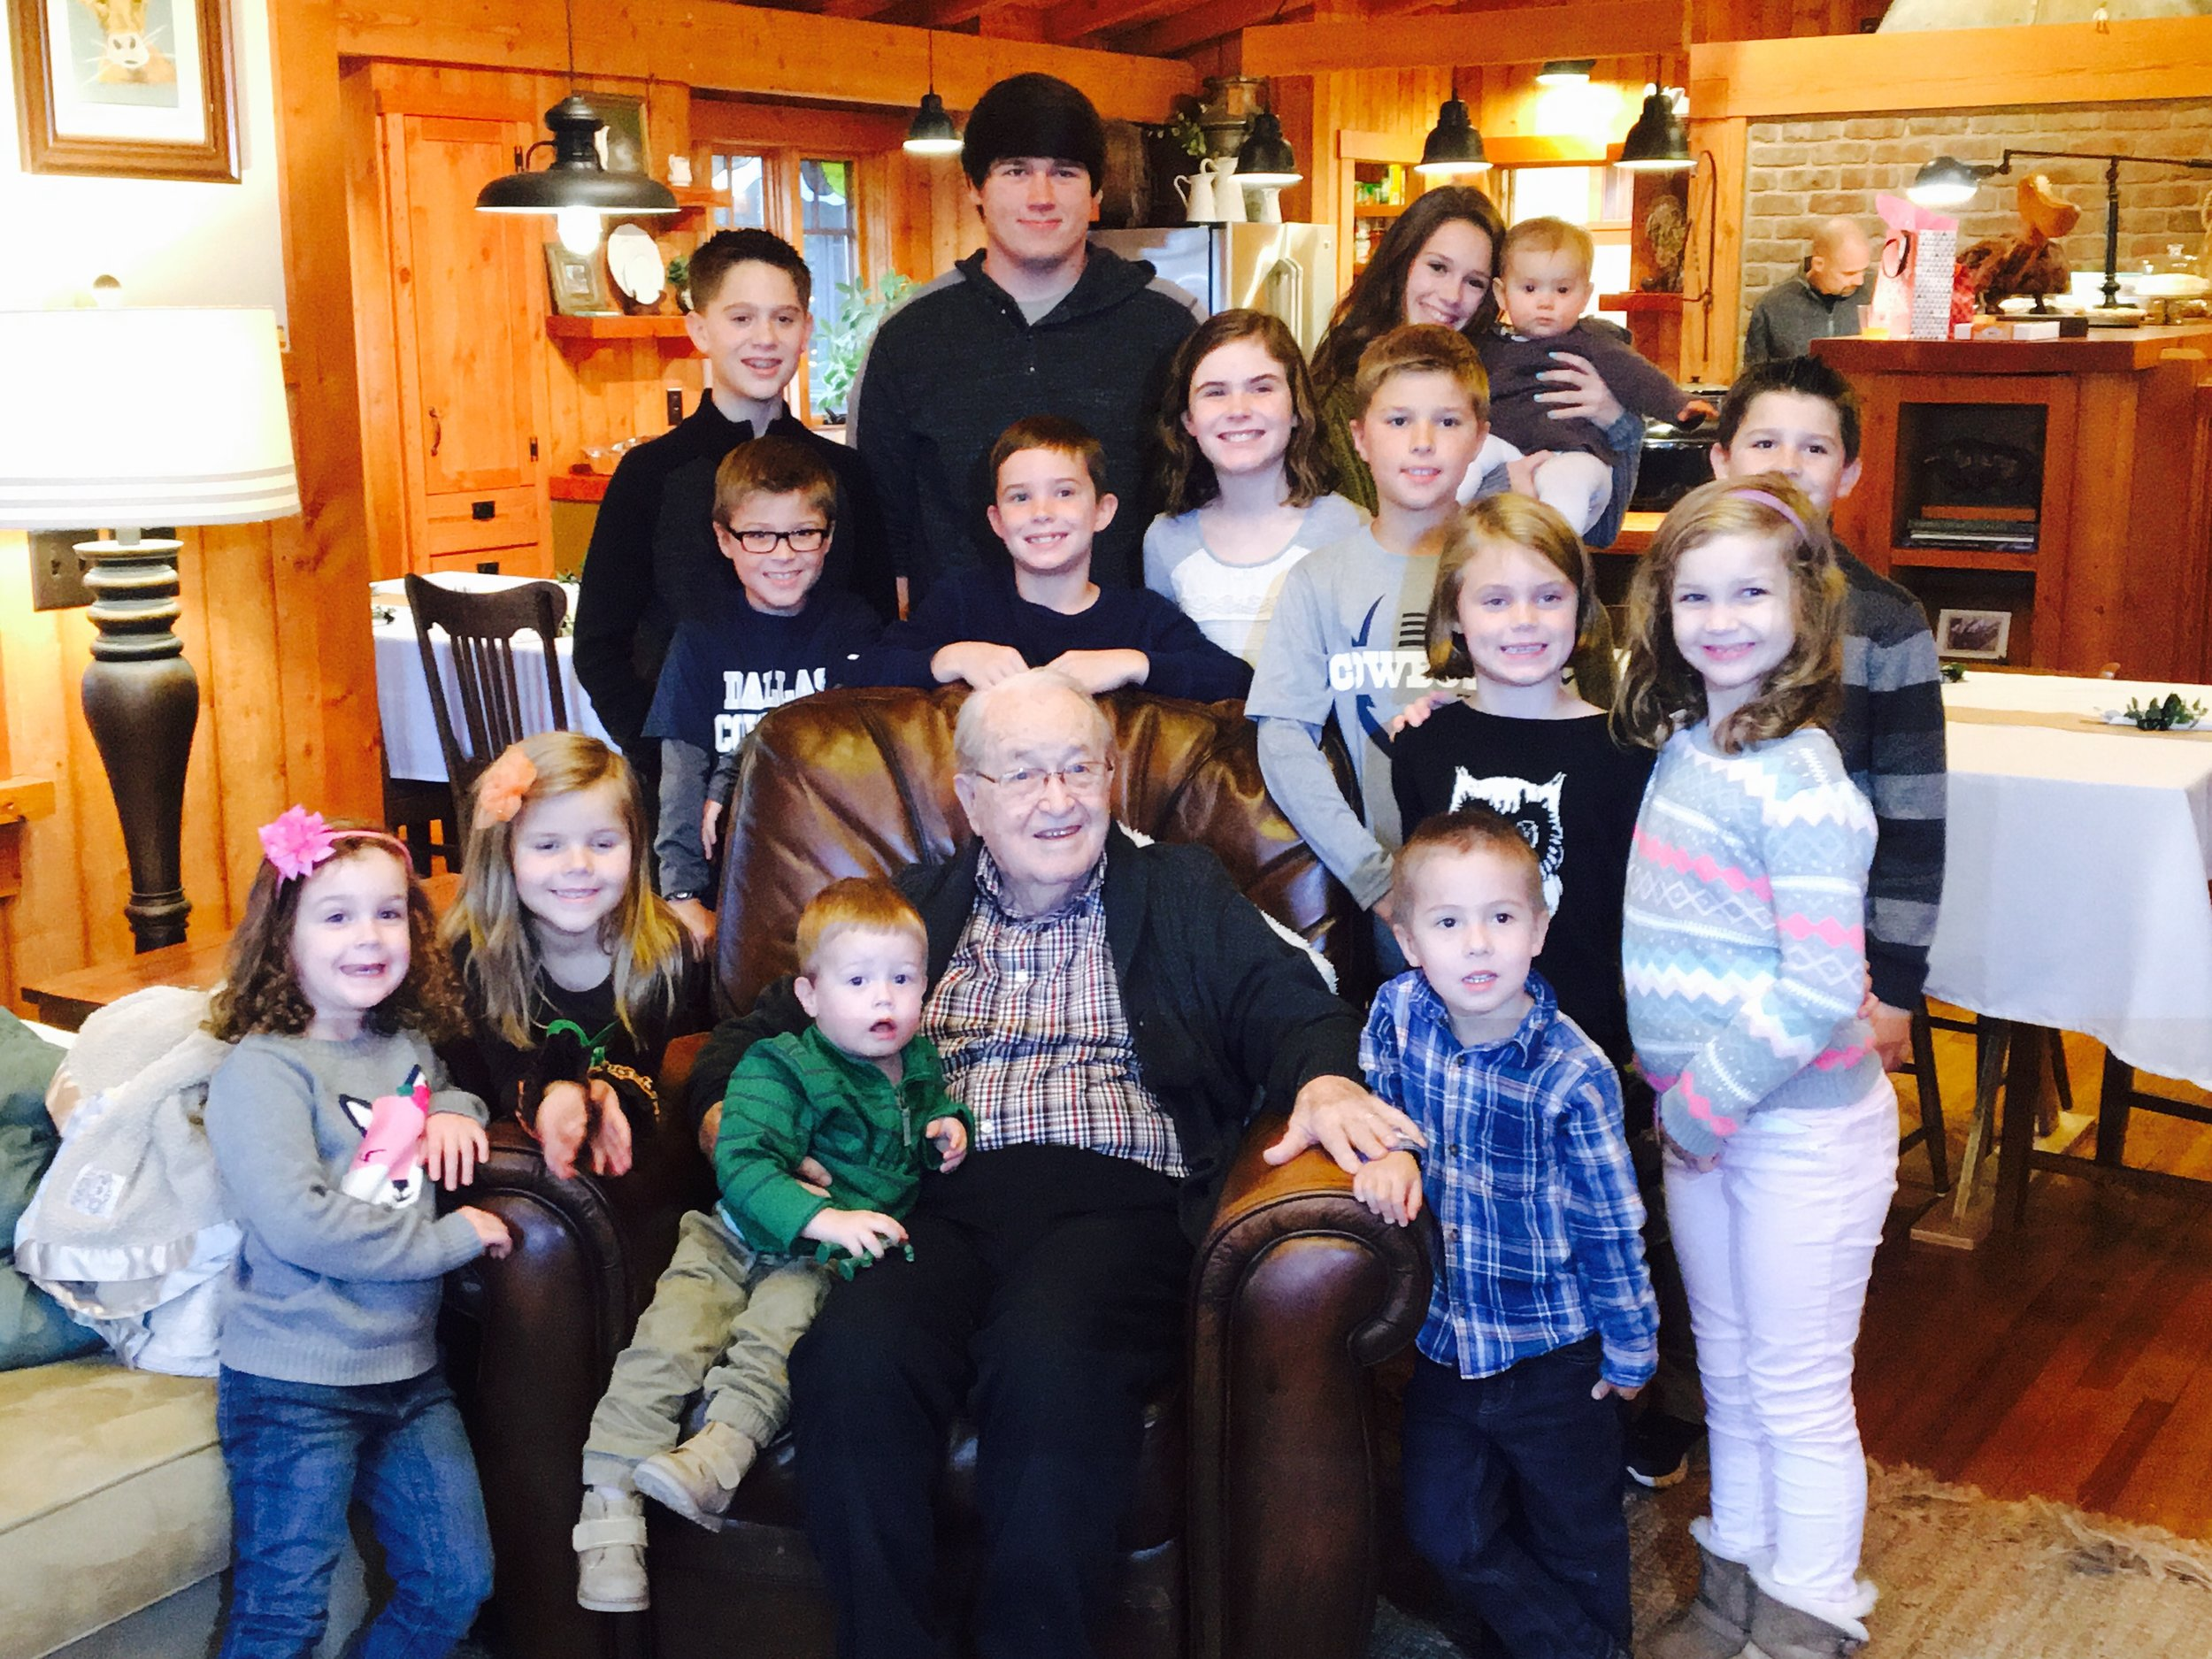 Dad and all 15 of his great grandchildren